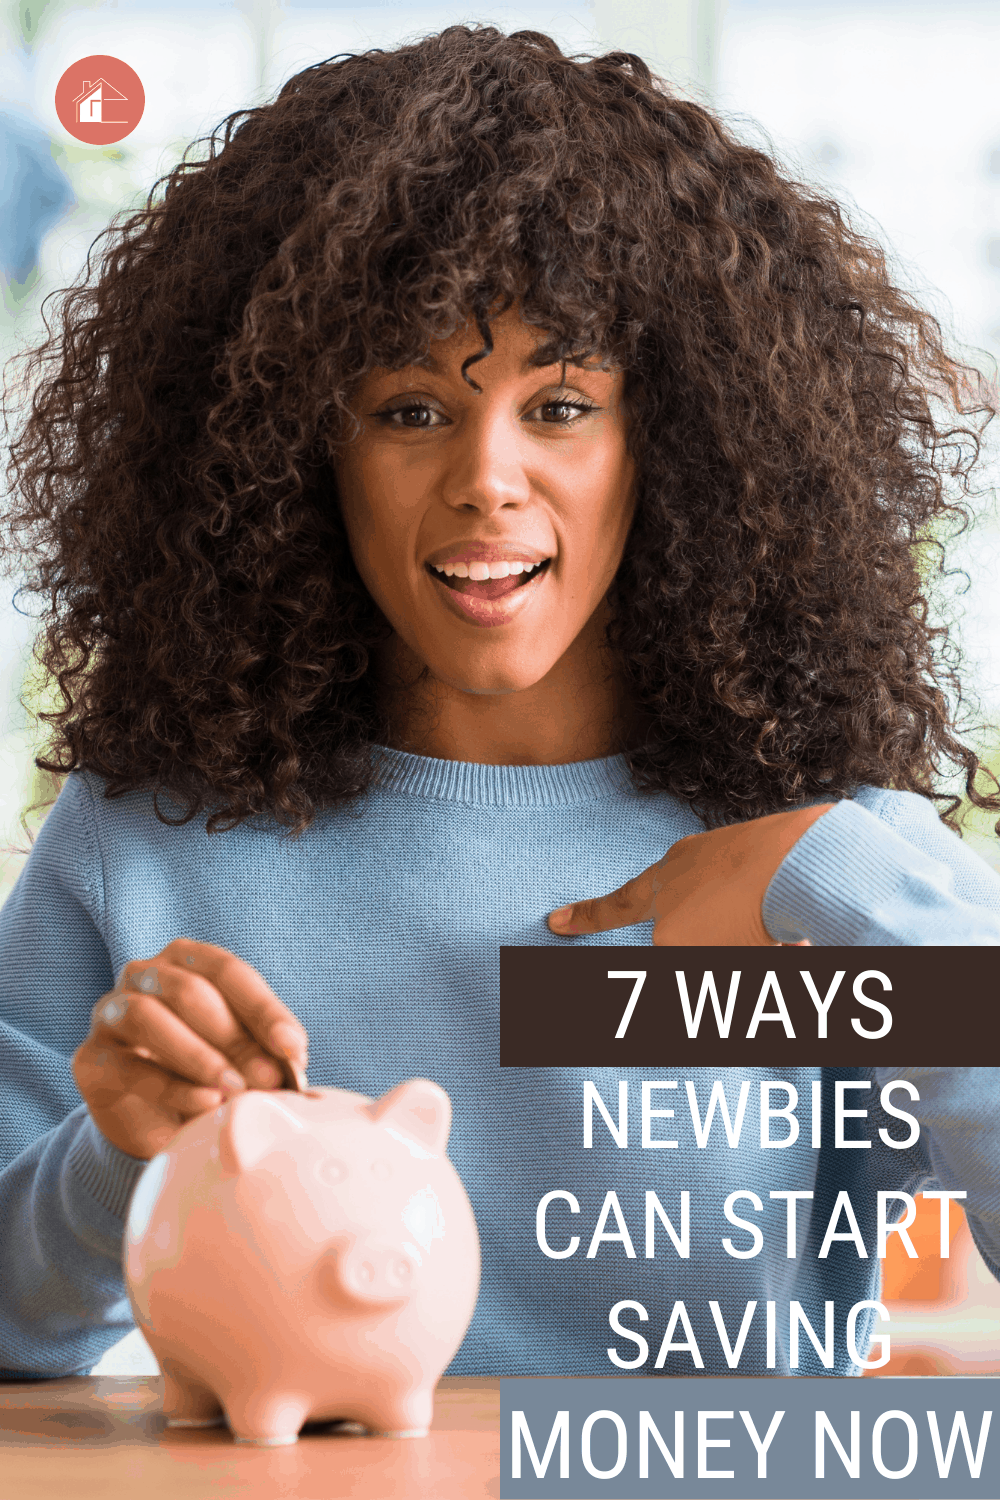 While saving money might seem like a daunting task, it really doesn't have to be. Learn how anyone can start saving today! via @mystayathome